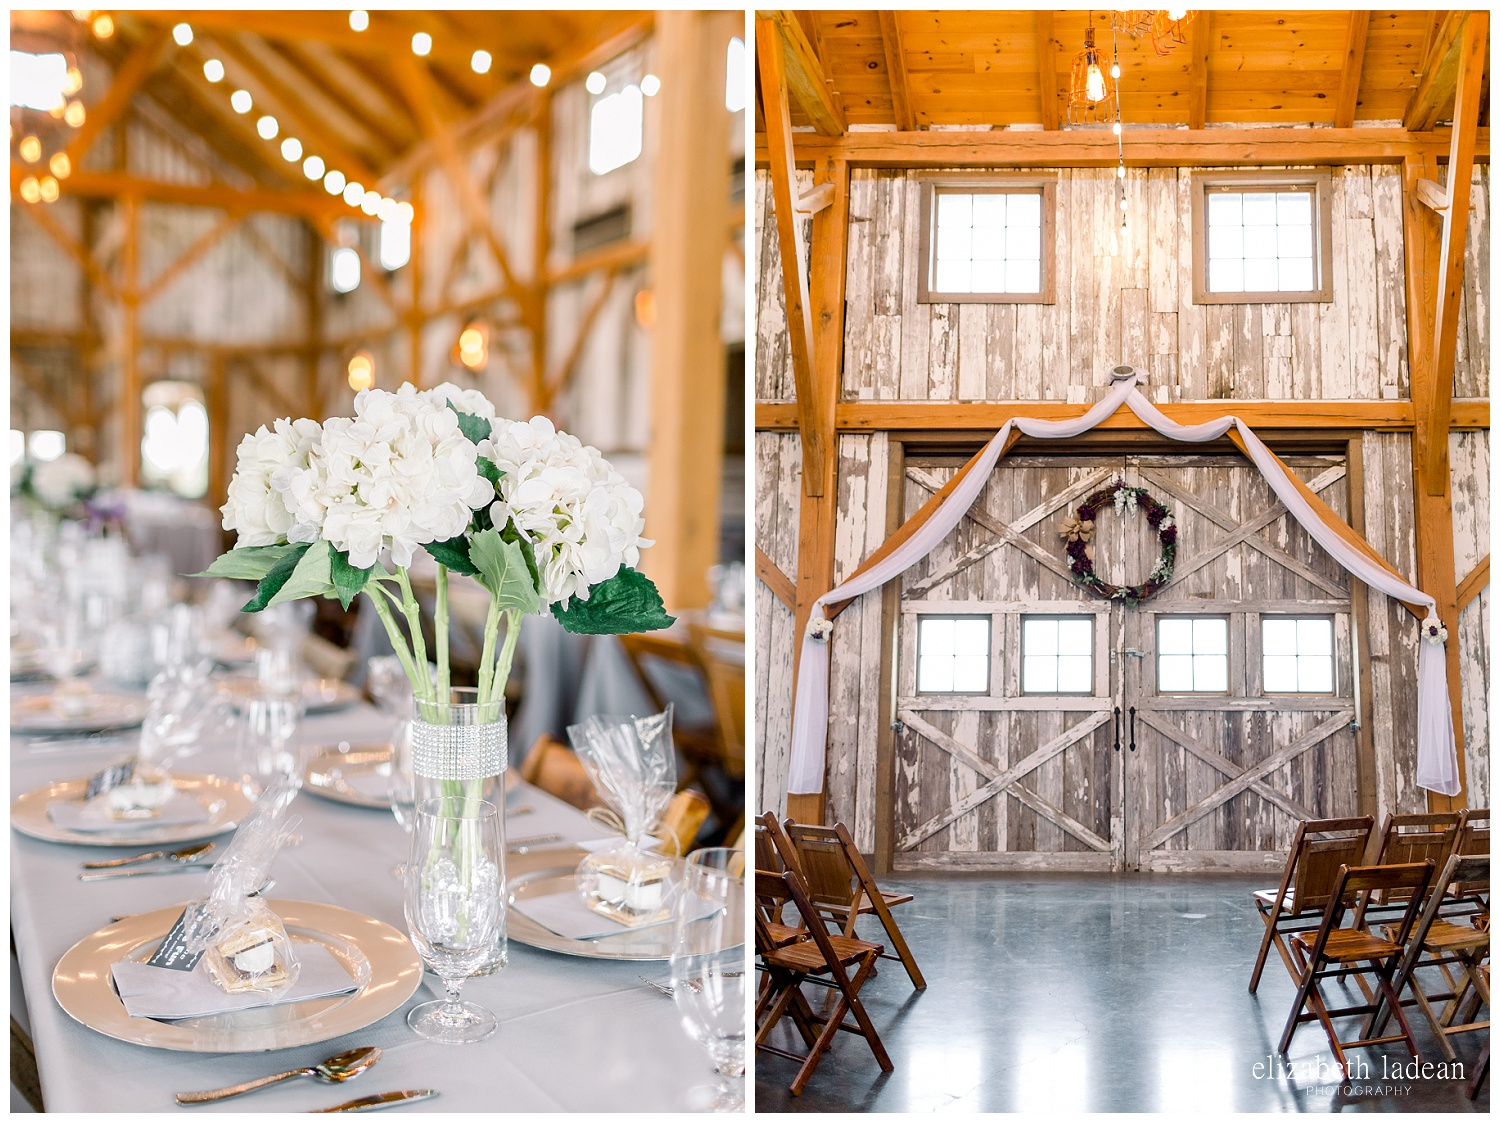 Weston-Timber-Barn-Wedding-Photography-L+A-elizabeth-ladean0photo_1839.jpg